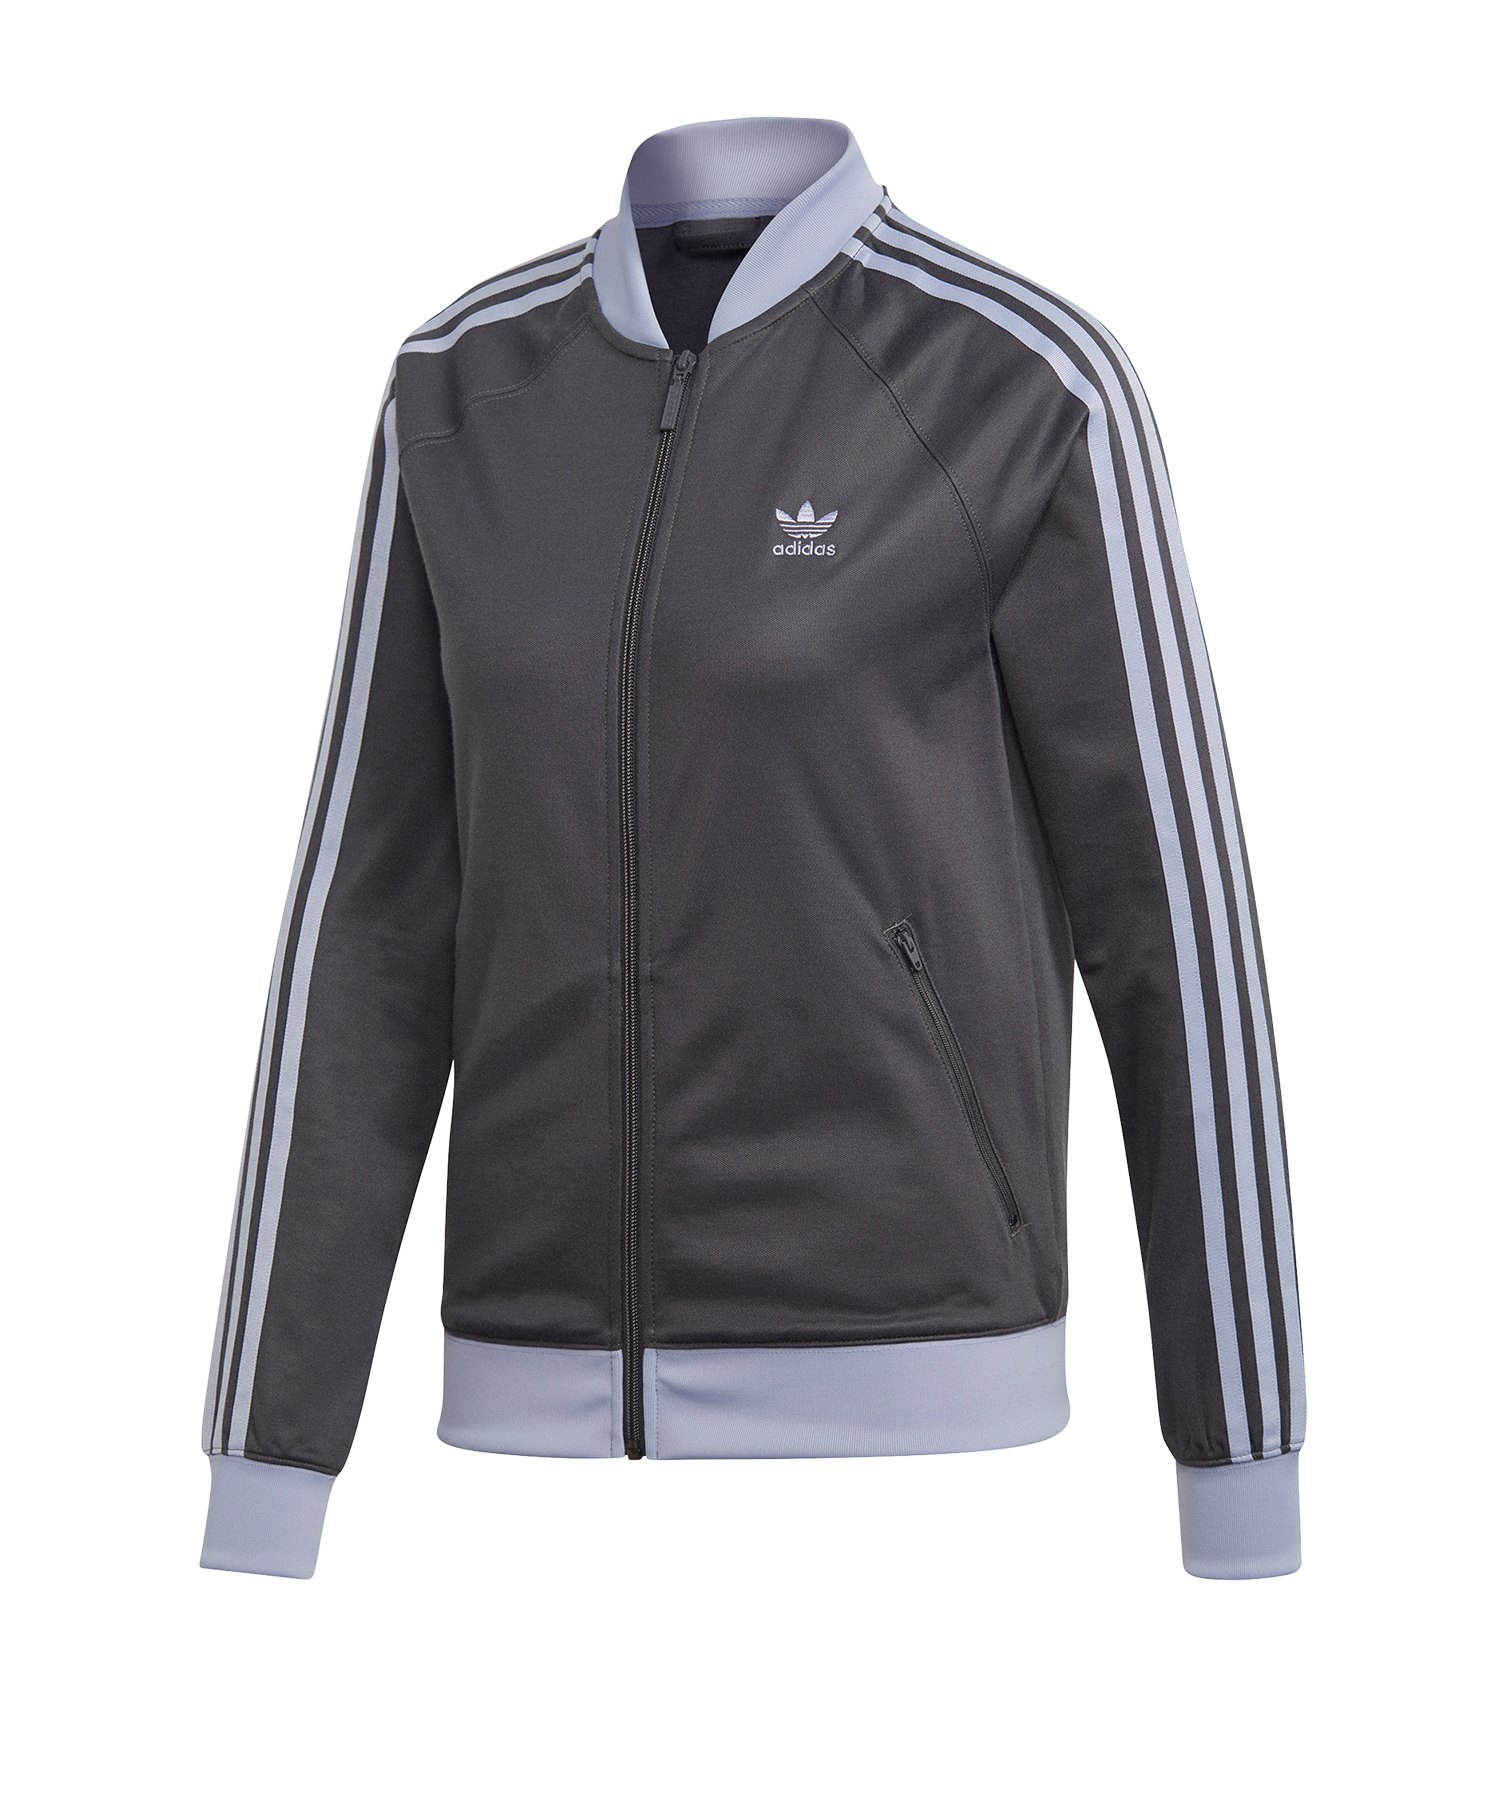 adidas Originals SST Track Top Jacke Damen Grau